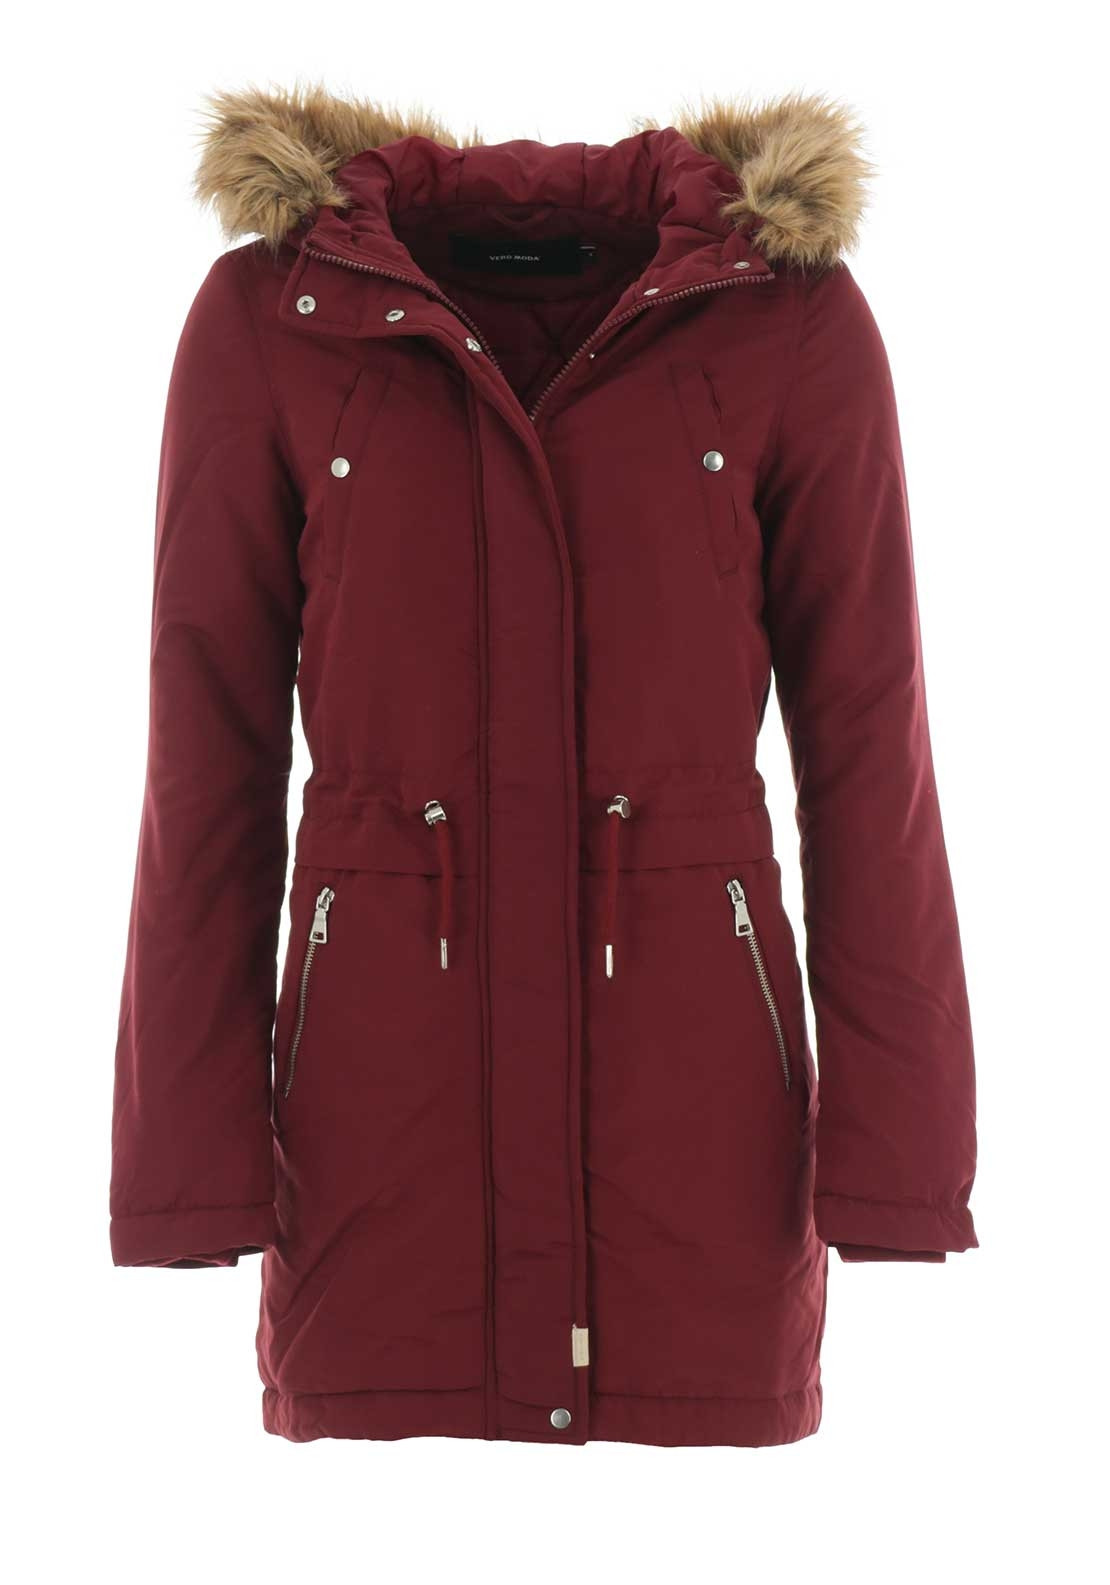 vero moda agnes parka jacket wine mcelhinneys. Black Bedroom Furniture Sets. Home Design Ideas